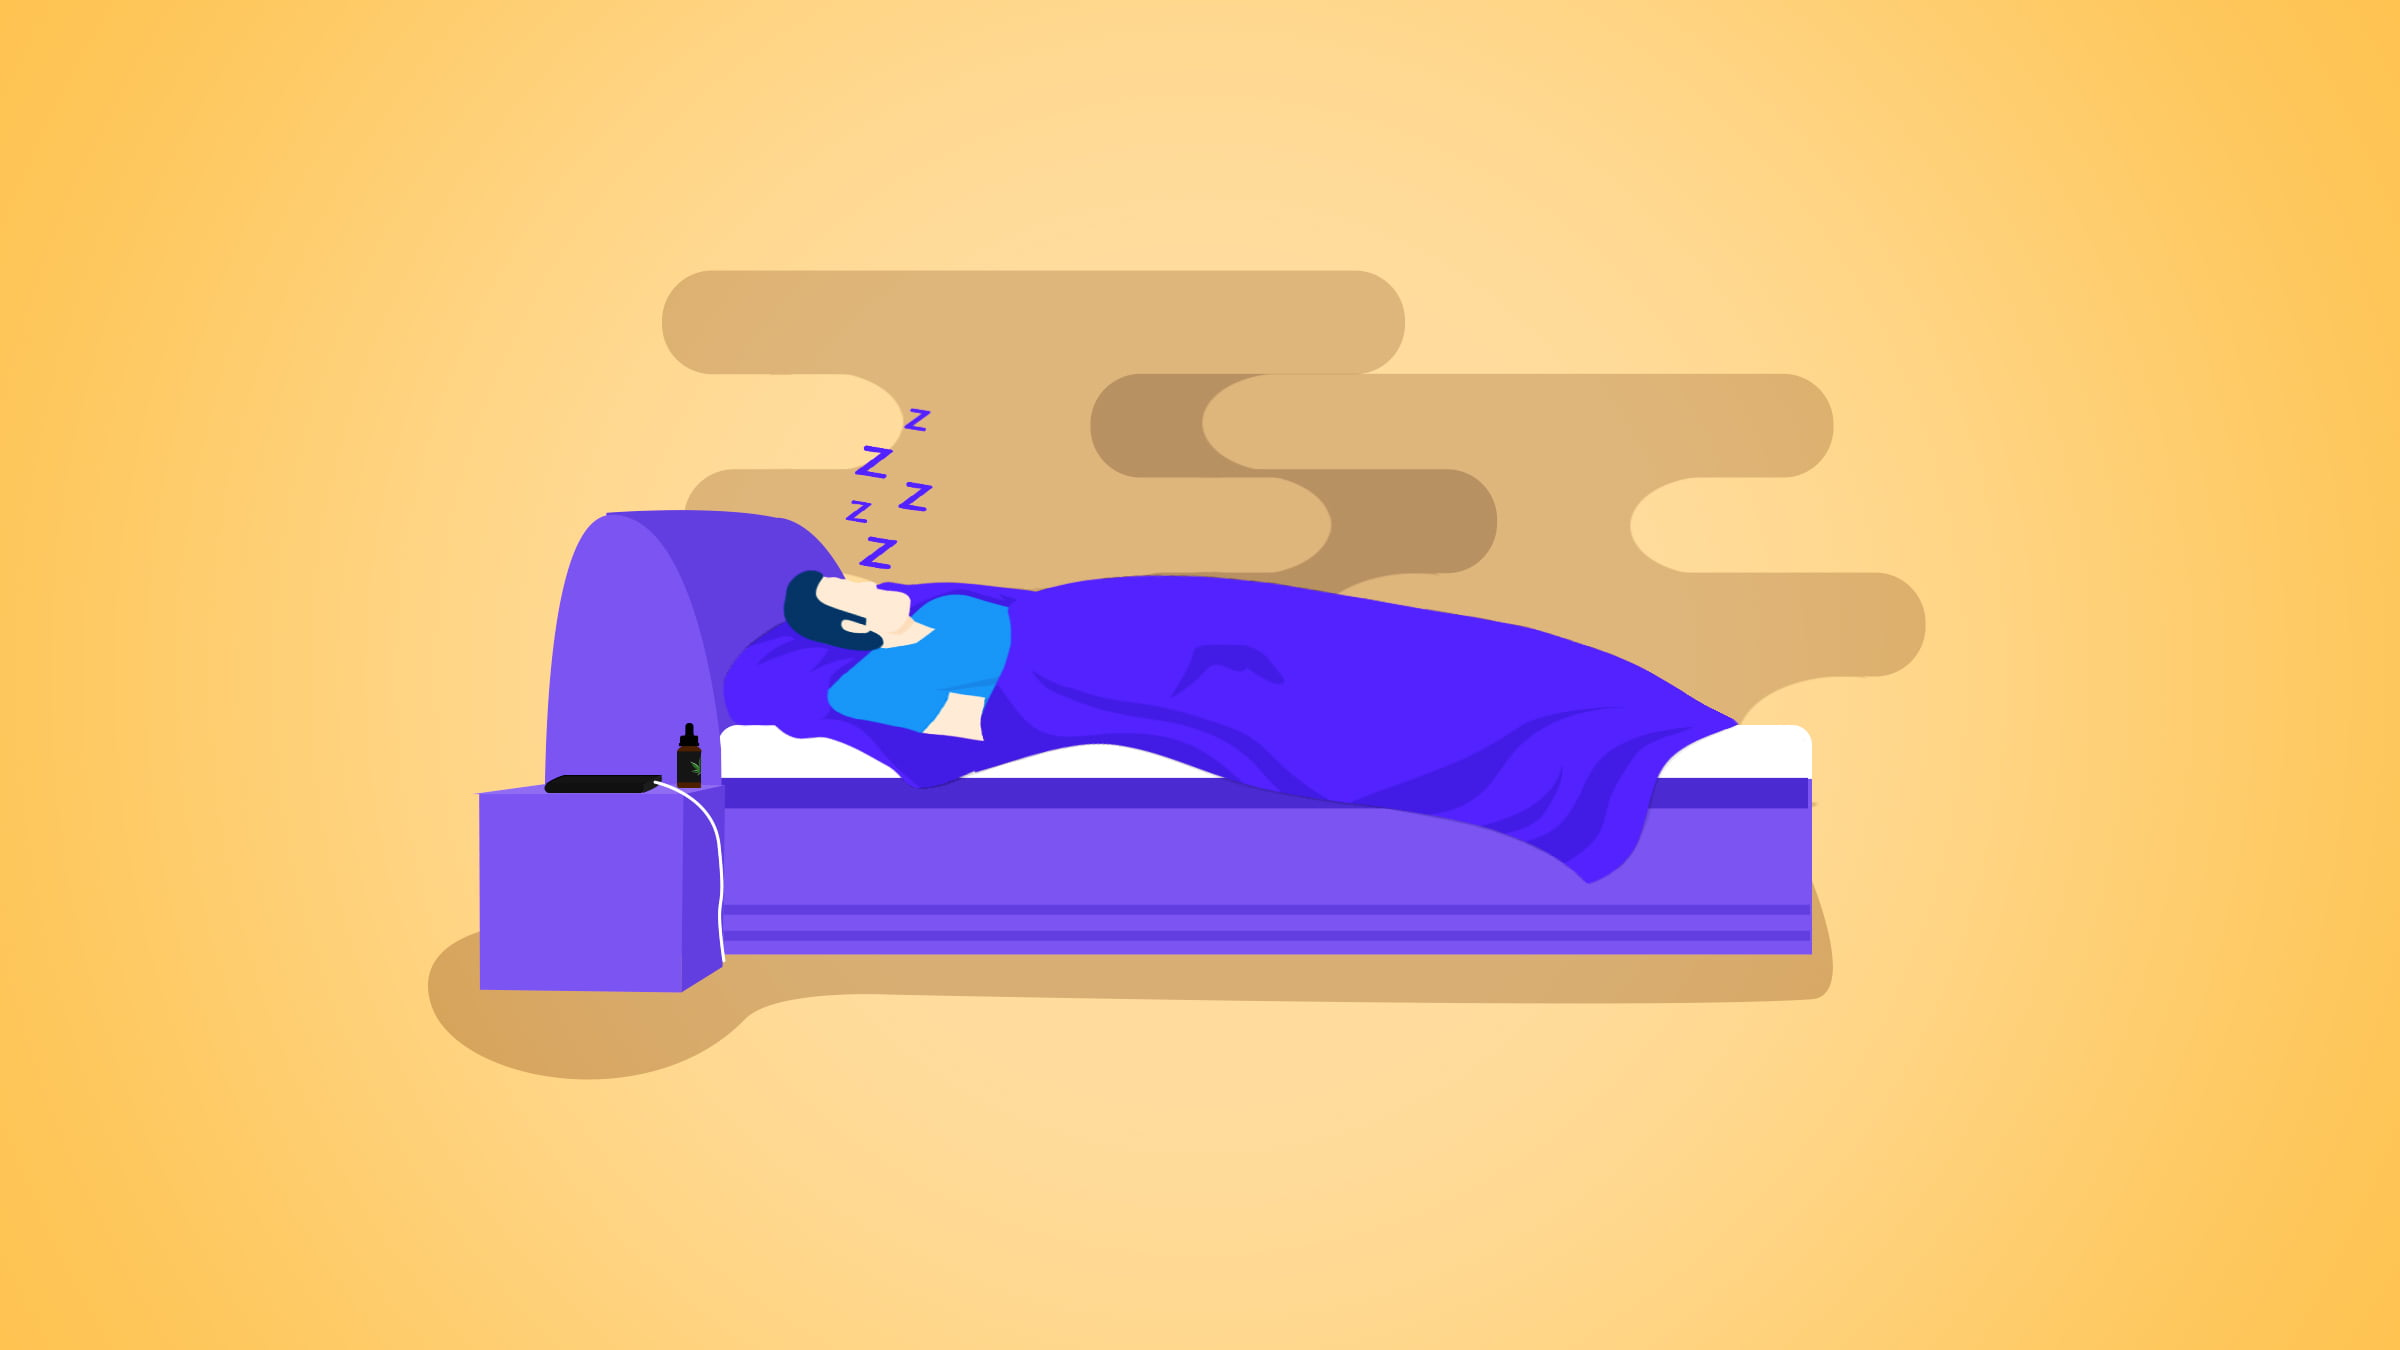 Illustration of a man sleeping on a purple bed with CBD oil bottle on the nightstand